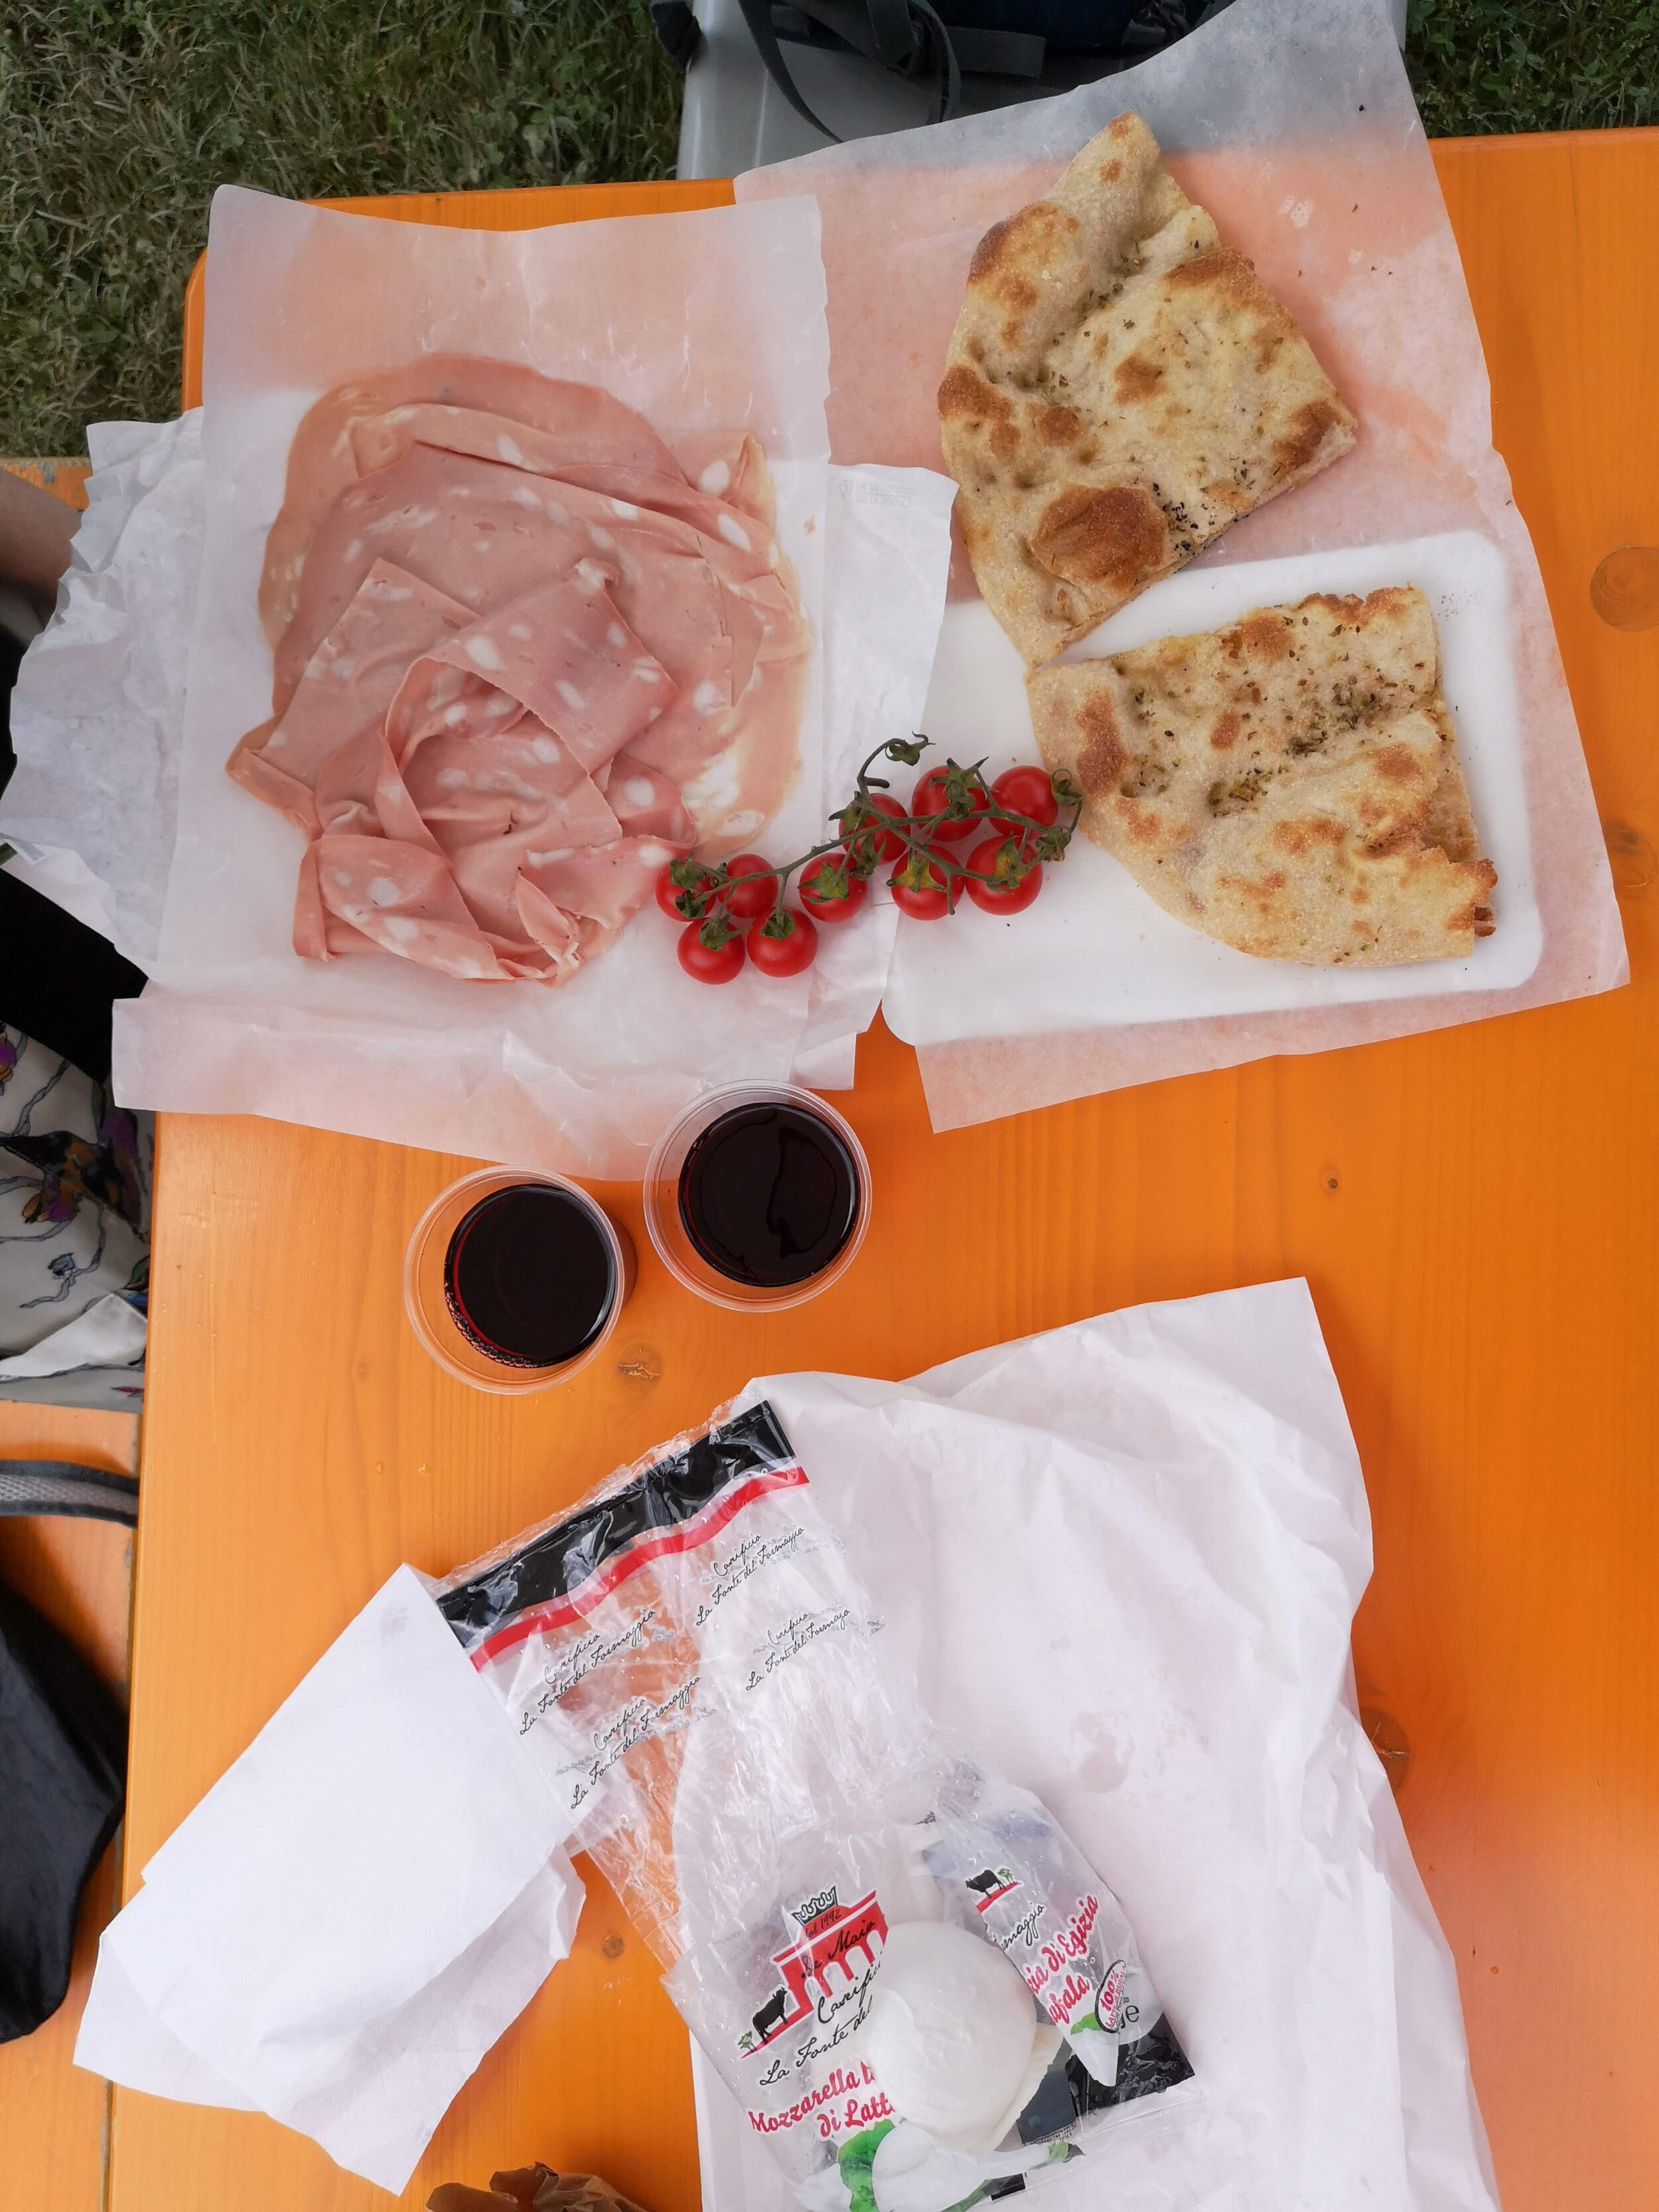 meats and cheses for picnic.jpg